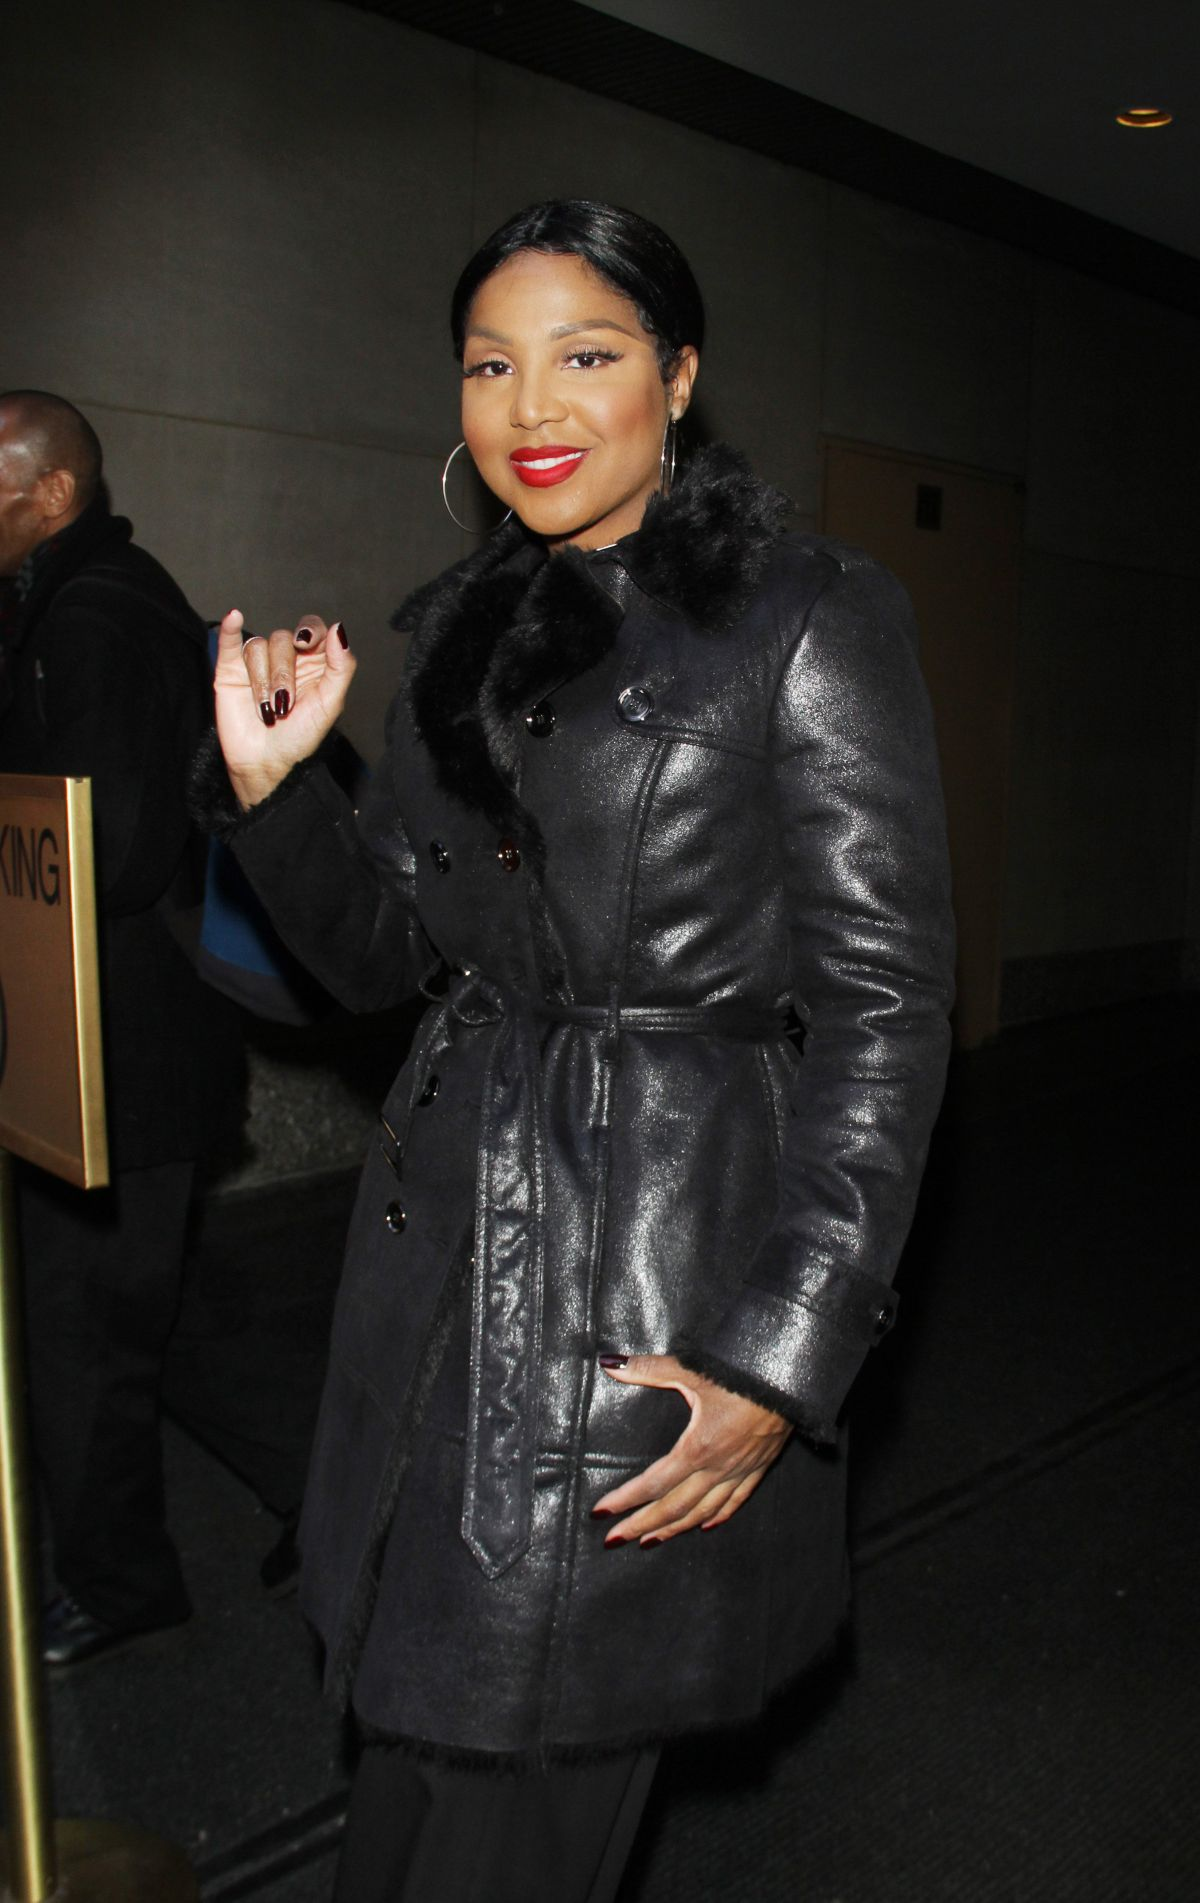 TONI BRAXTON Arrives at Today Show in New York 01/20/2016